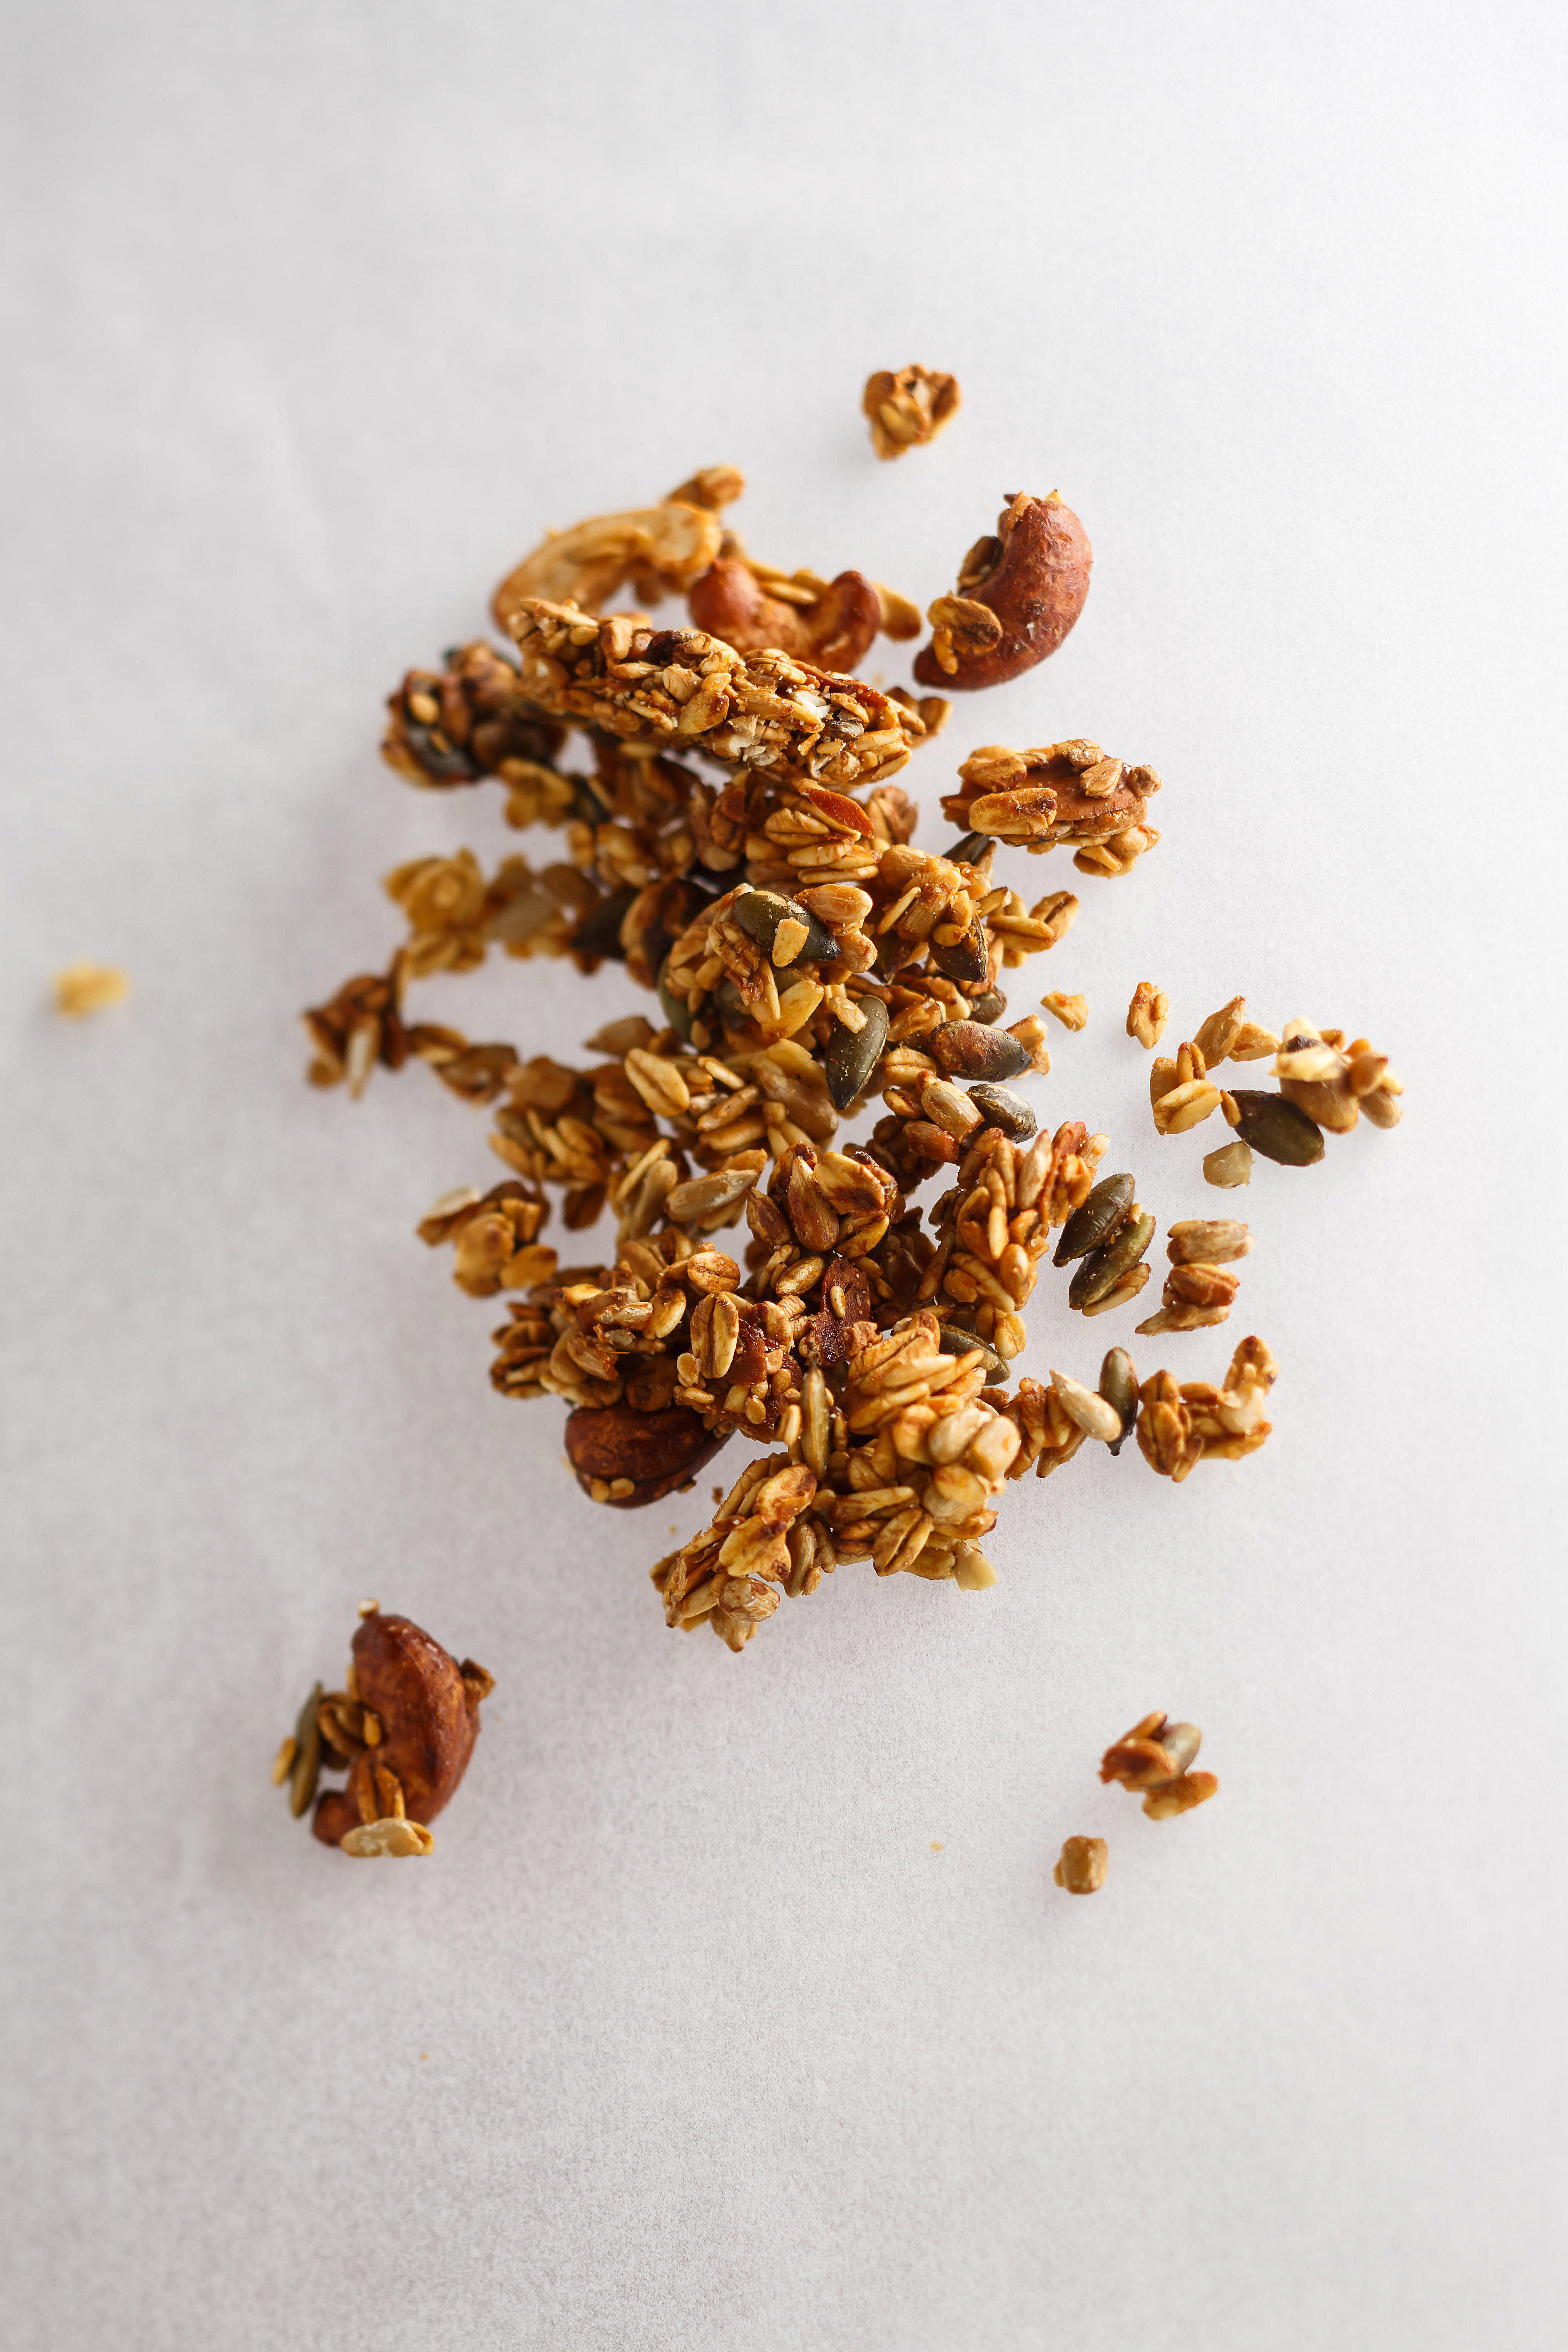 Granola bio de Supersec